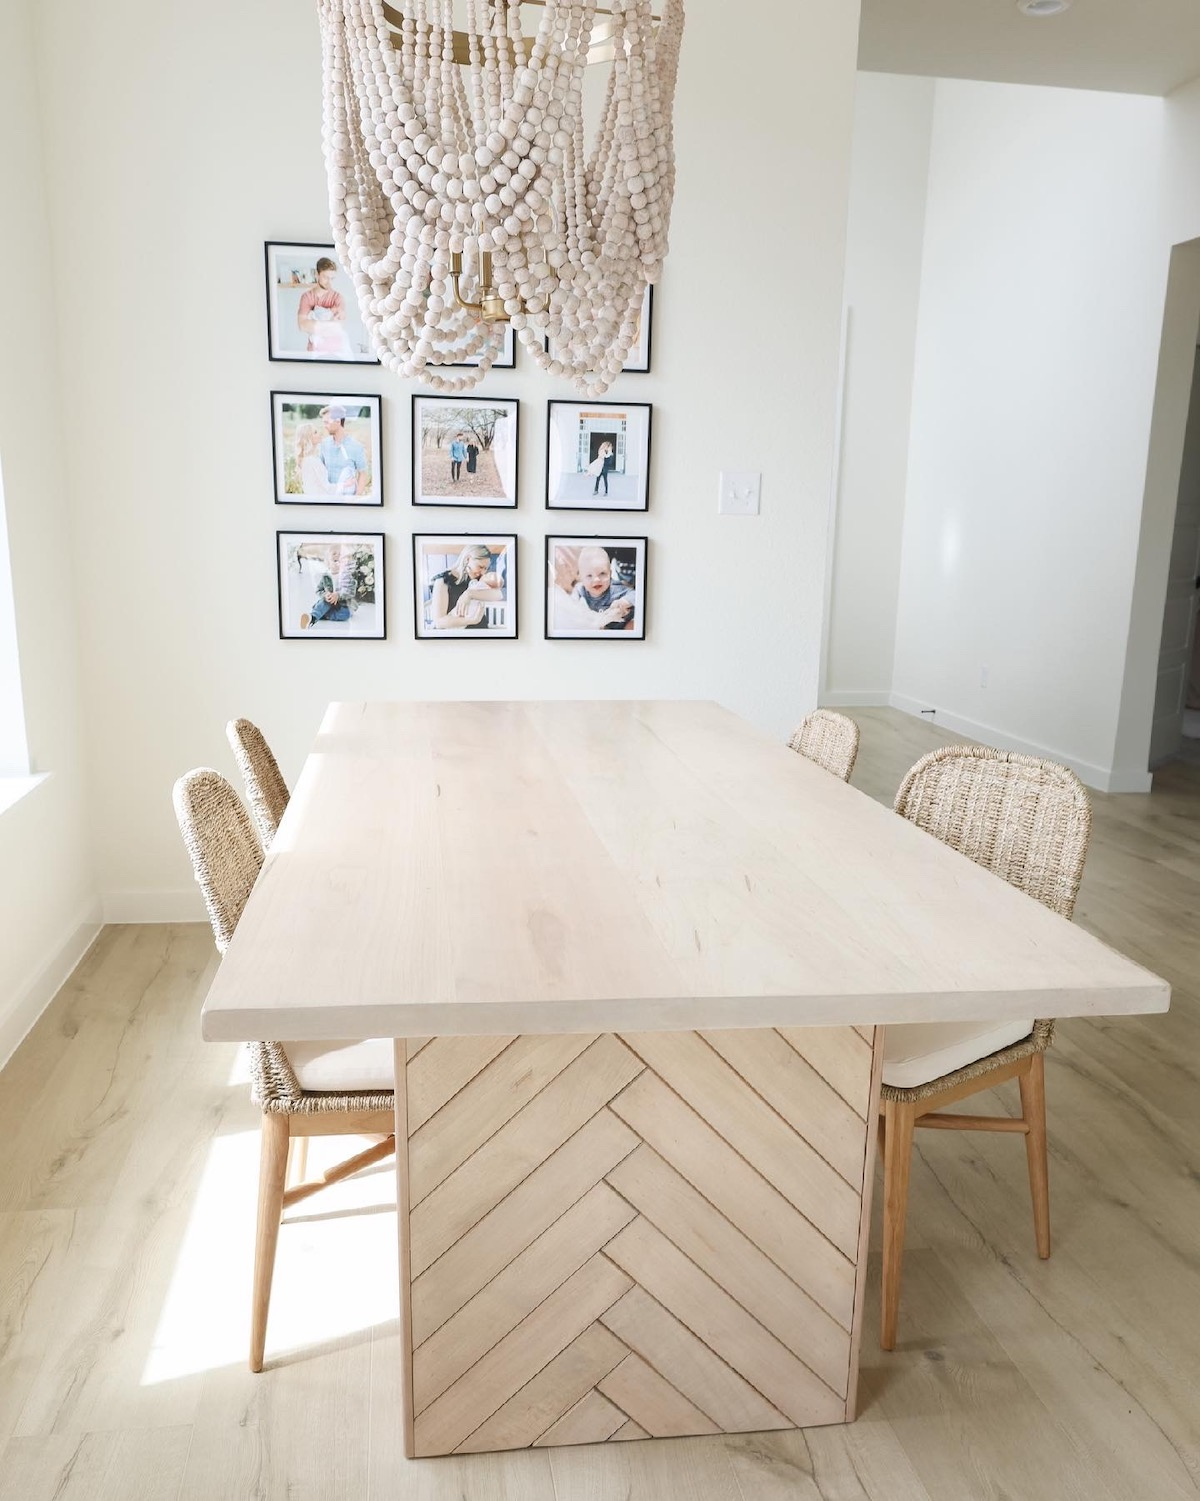 9 frame grid gallery wall in minimalist dining room featuring family portraits in Artifact Uprising Modern Metal Frames behind dining table and roped chandelier